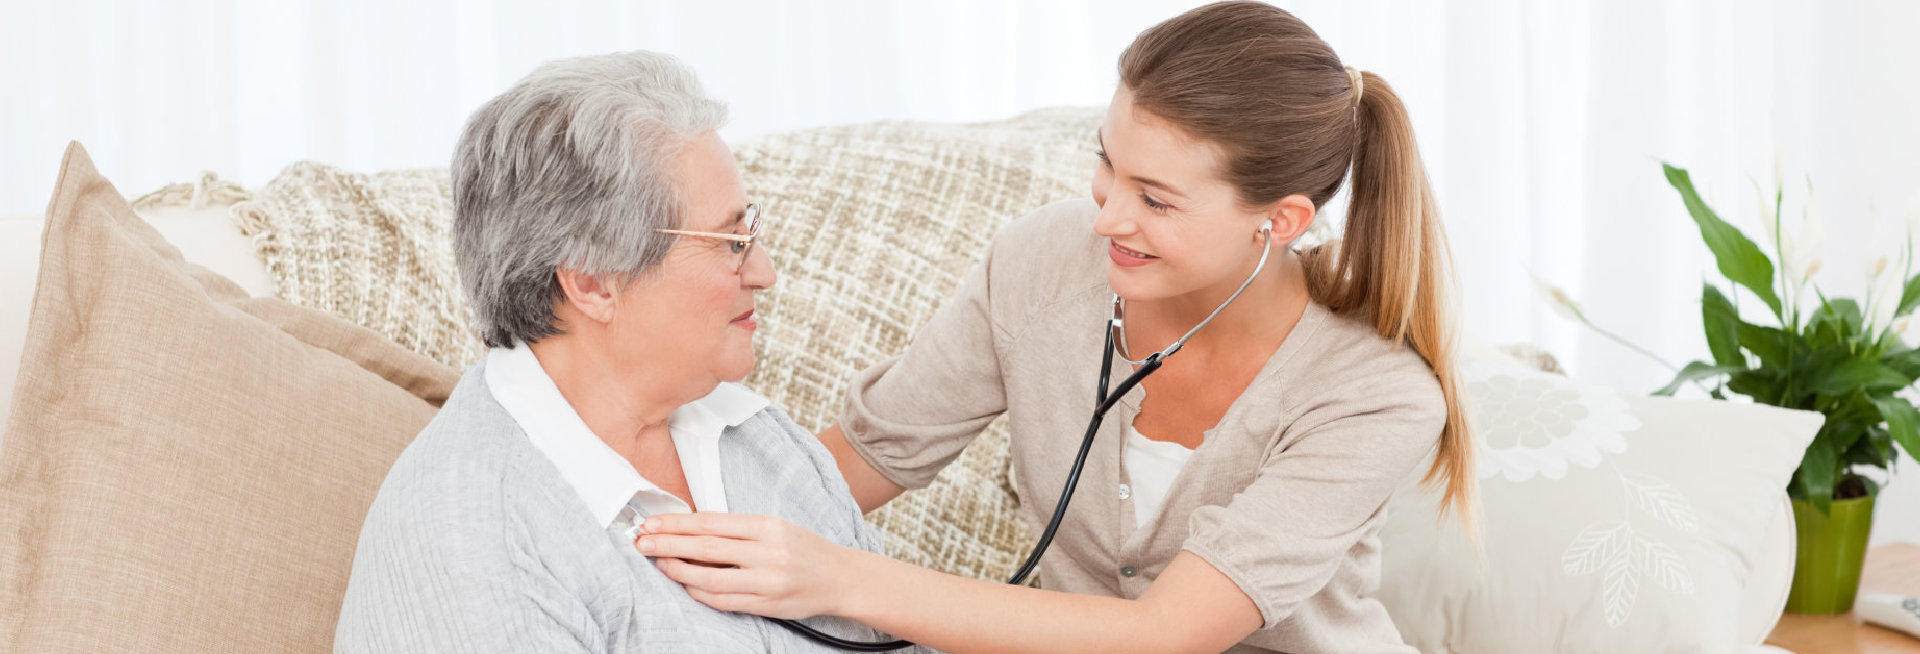 The Most Trustable Home Healthcare Agencies in Texas – A Hug Away